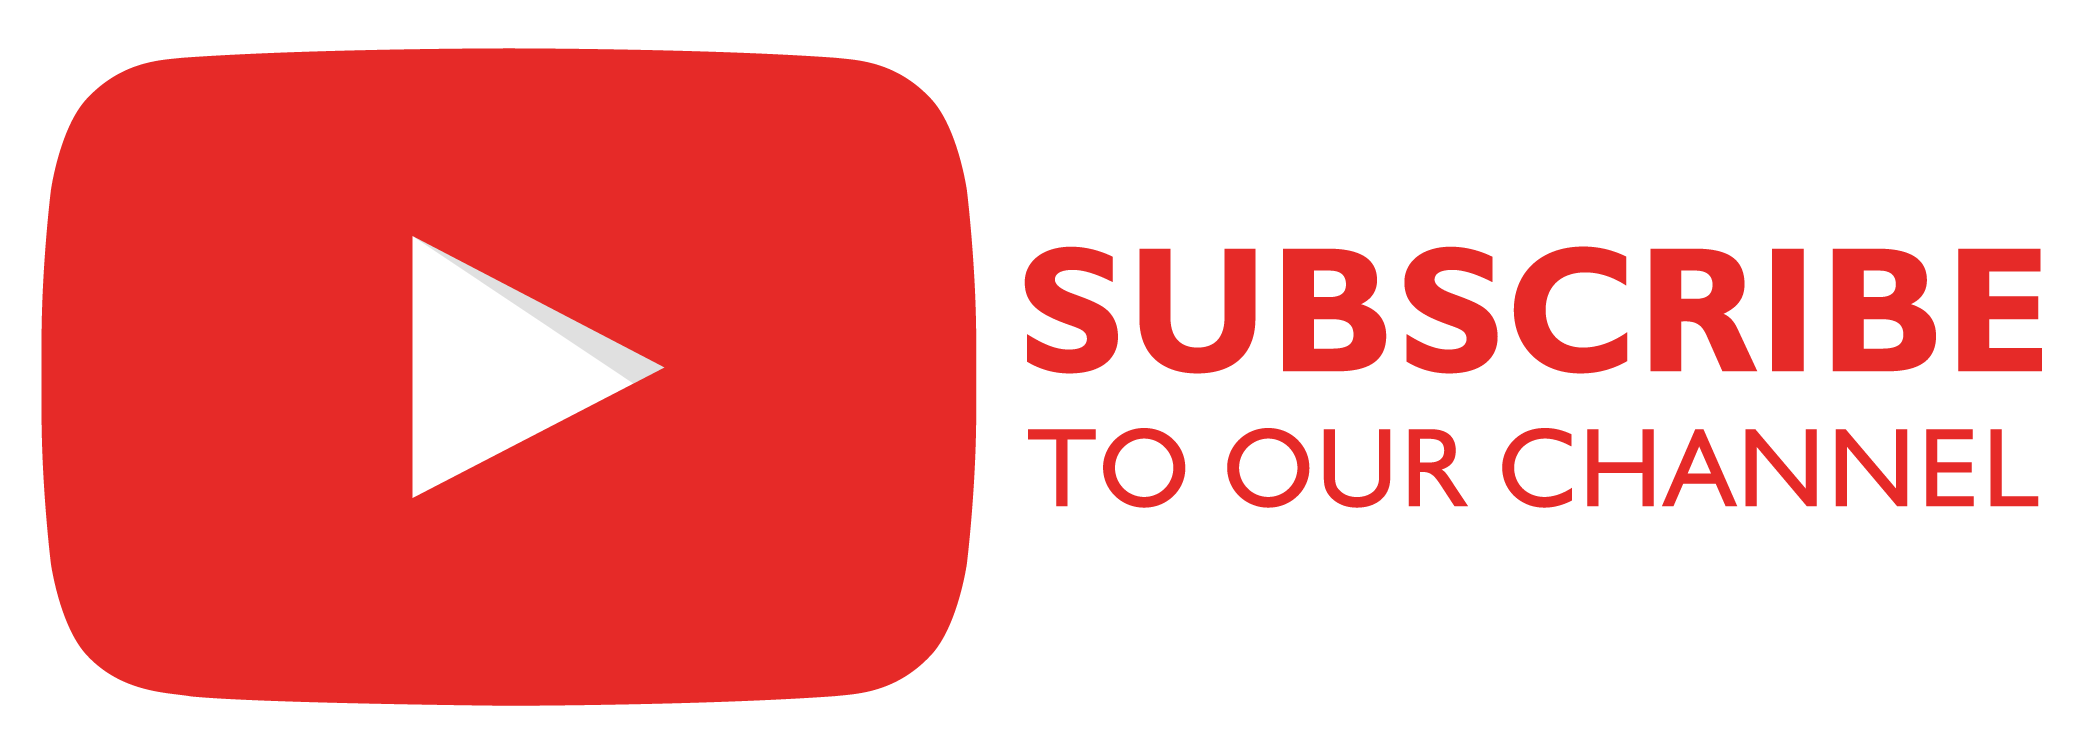 Youtube Logo Clip Art Subscribe Png Download 2083 754 Free Transparent Png Download Clip Art Library